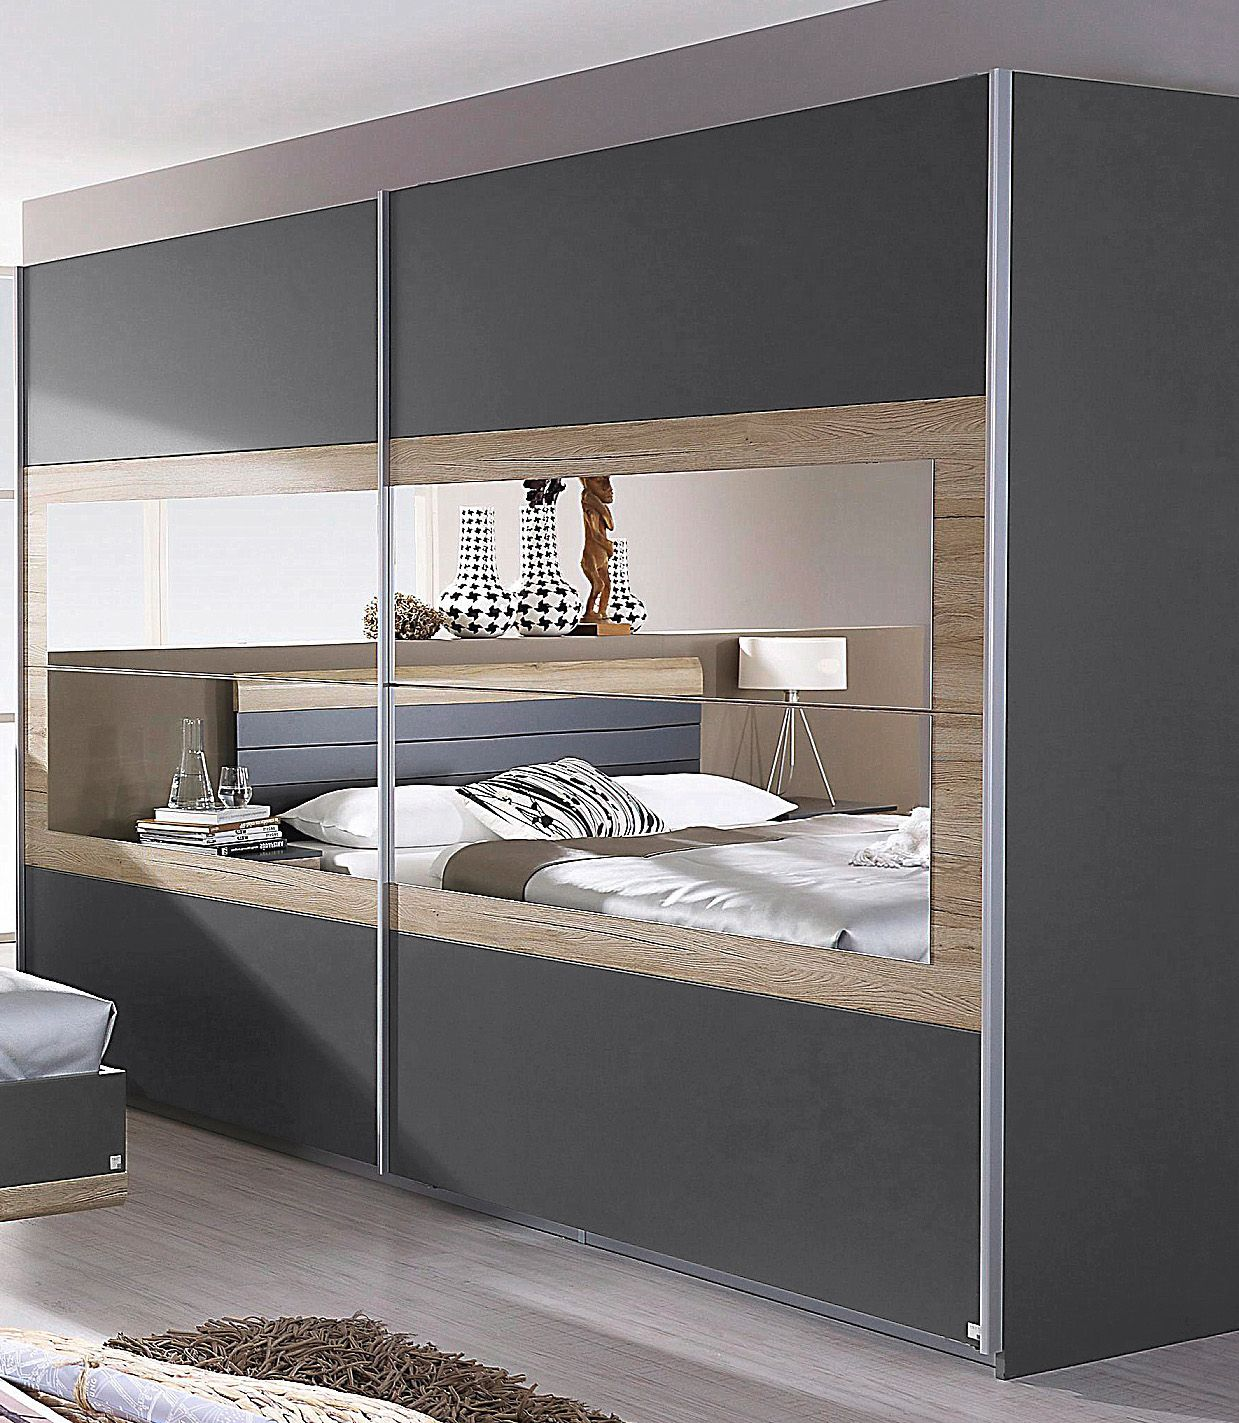 rauch schwebet renschrank schwab versand schr nke. Black Bedroom Furniture Sets. Home Design Ideas